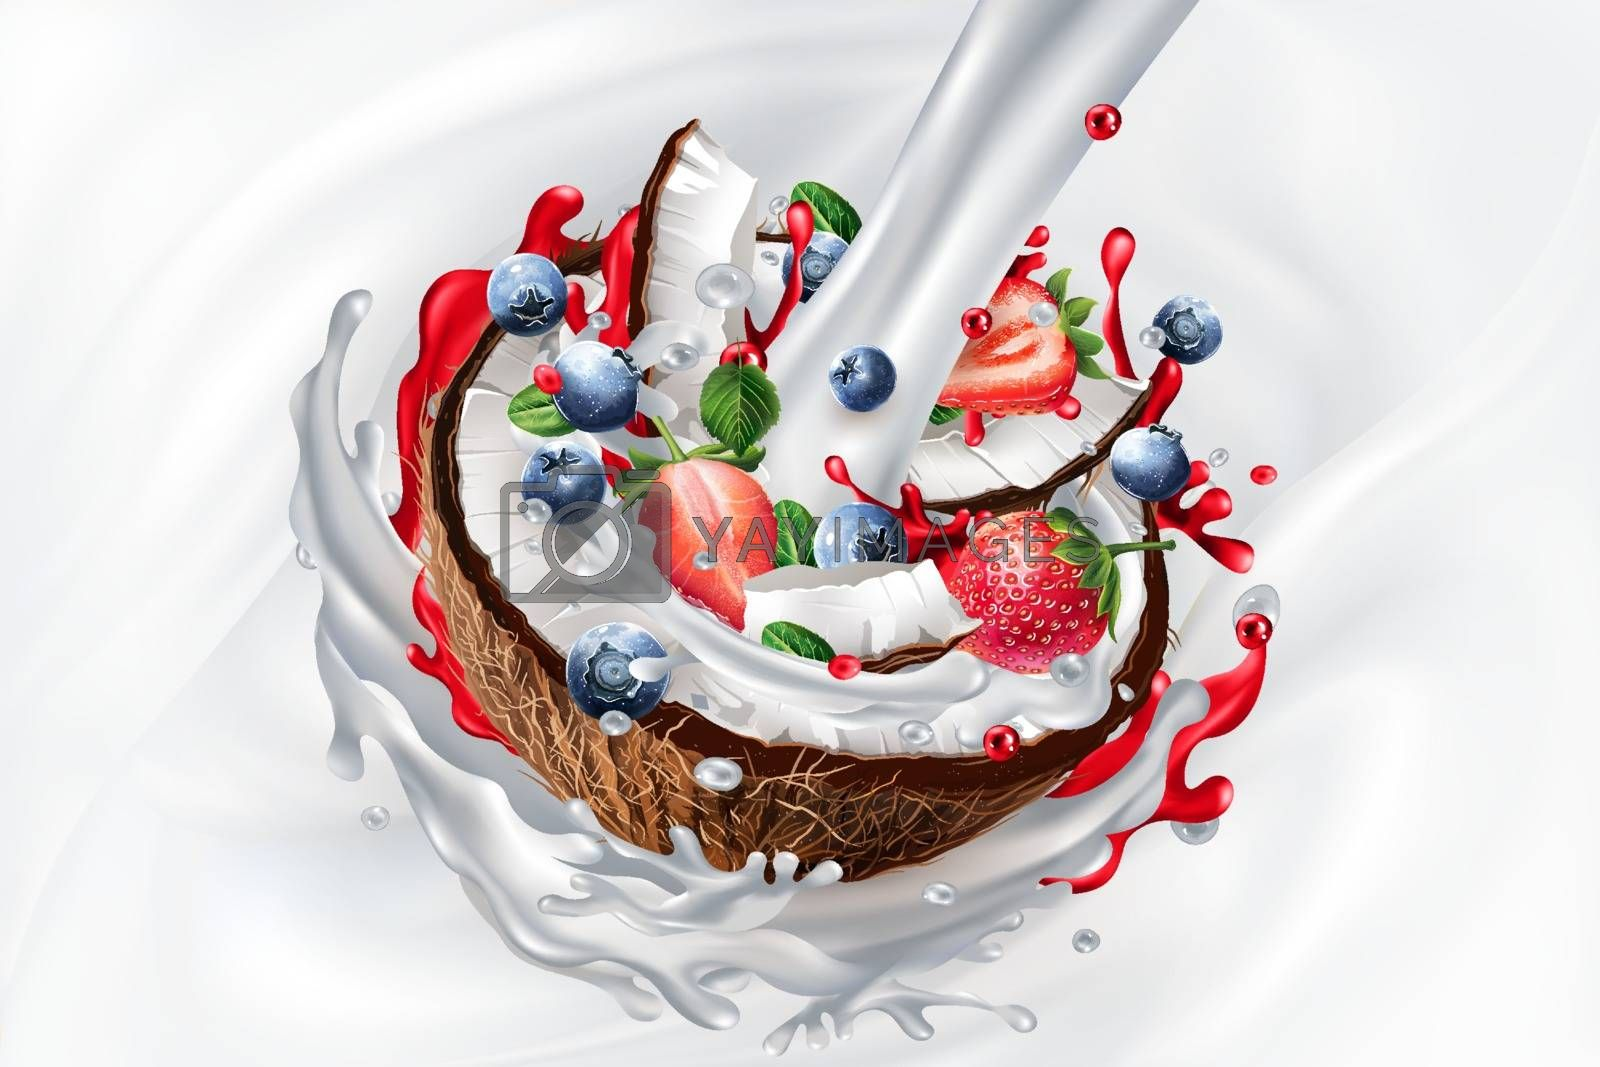 Sliced coconut with blueberries and strawberries and a stream of milk on a white liquid background. Realistic vector illustration.